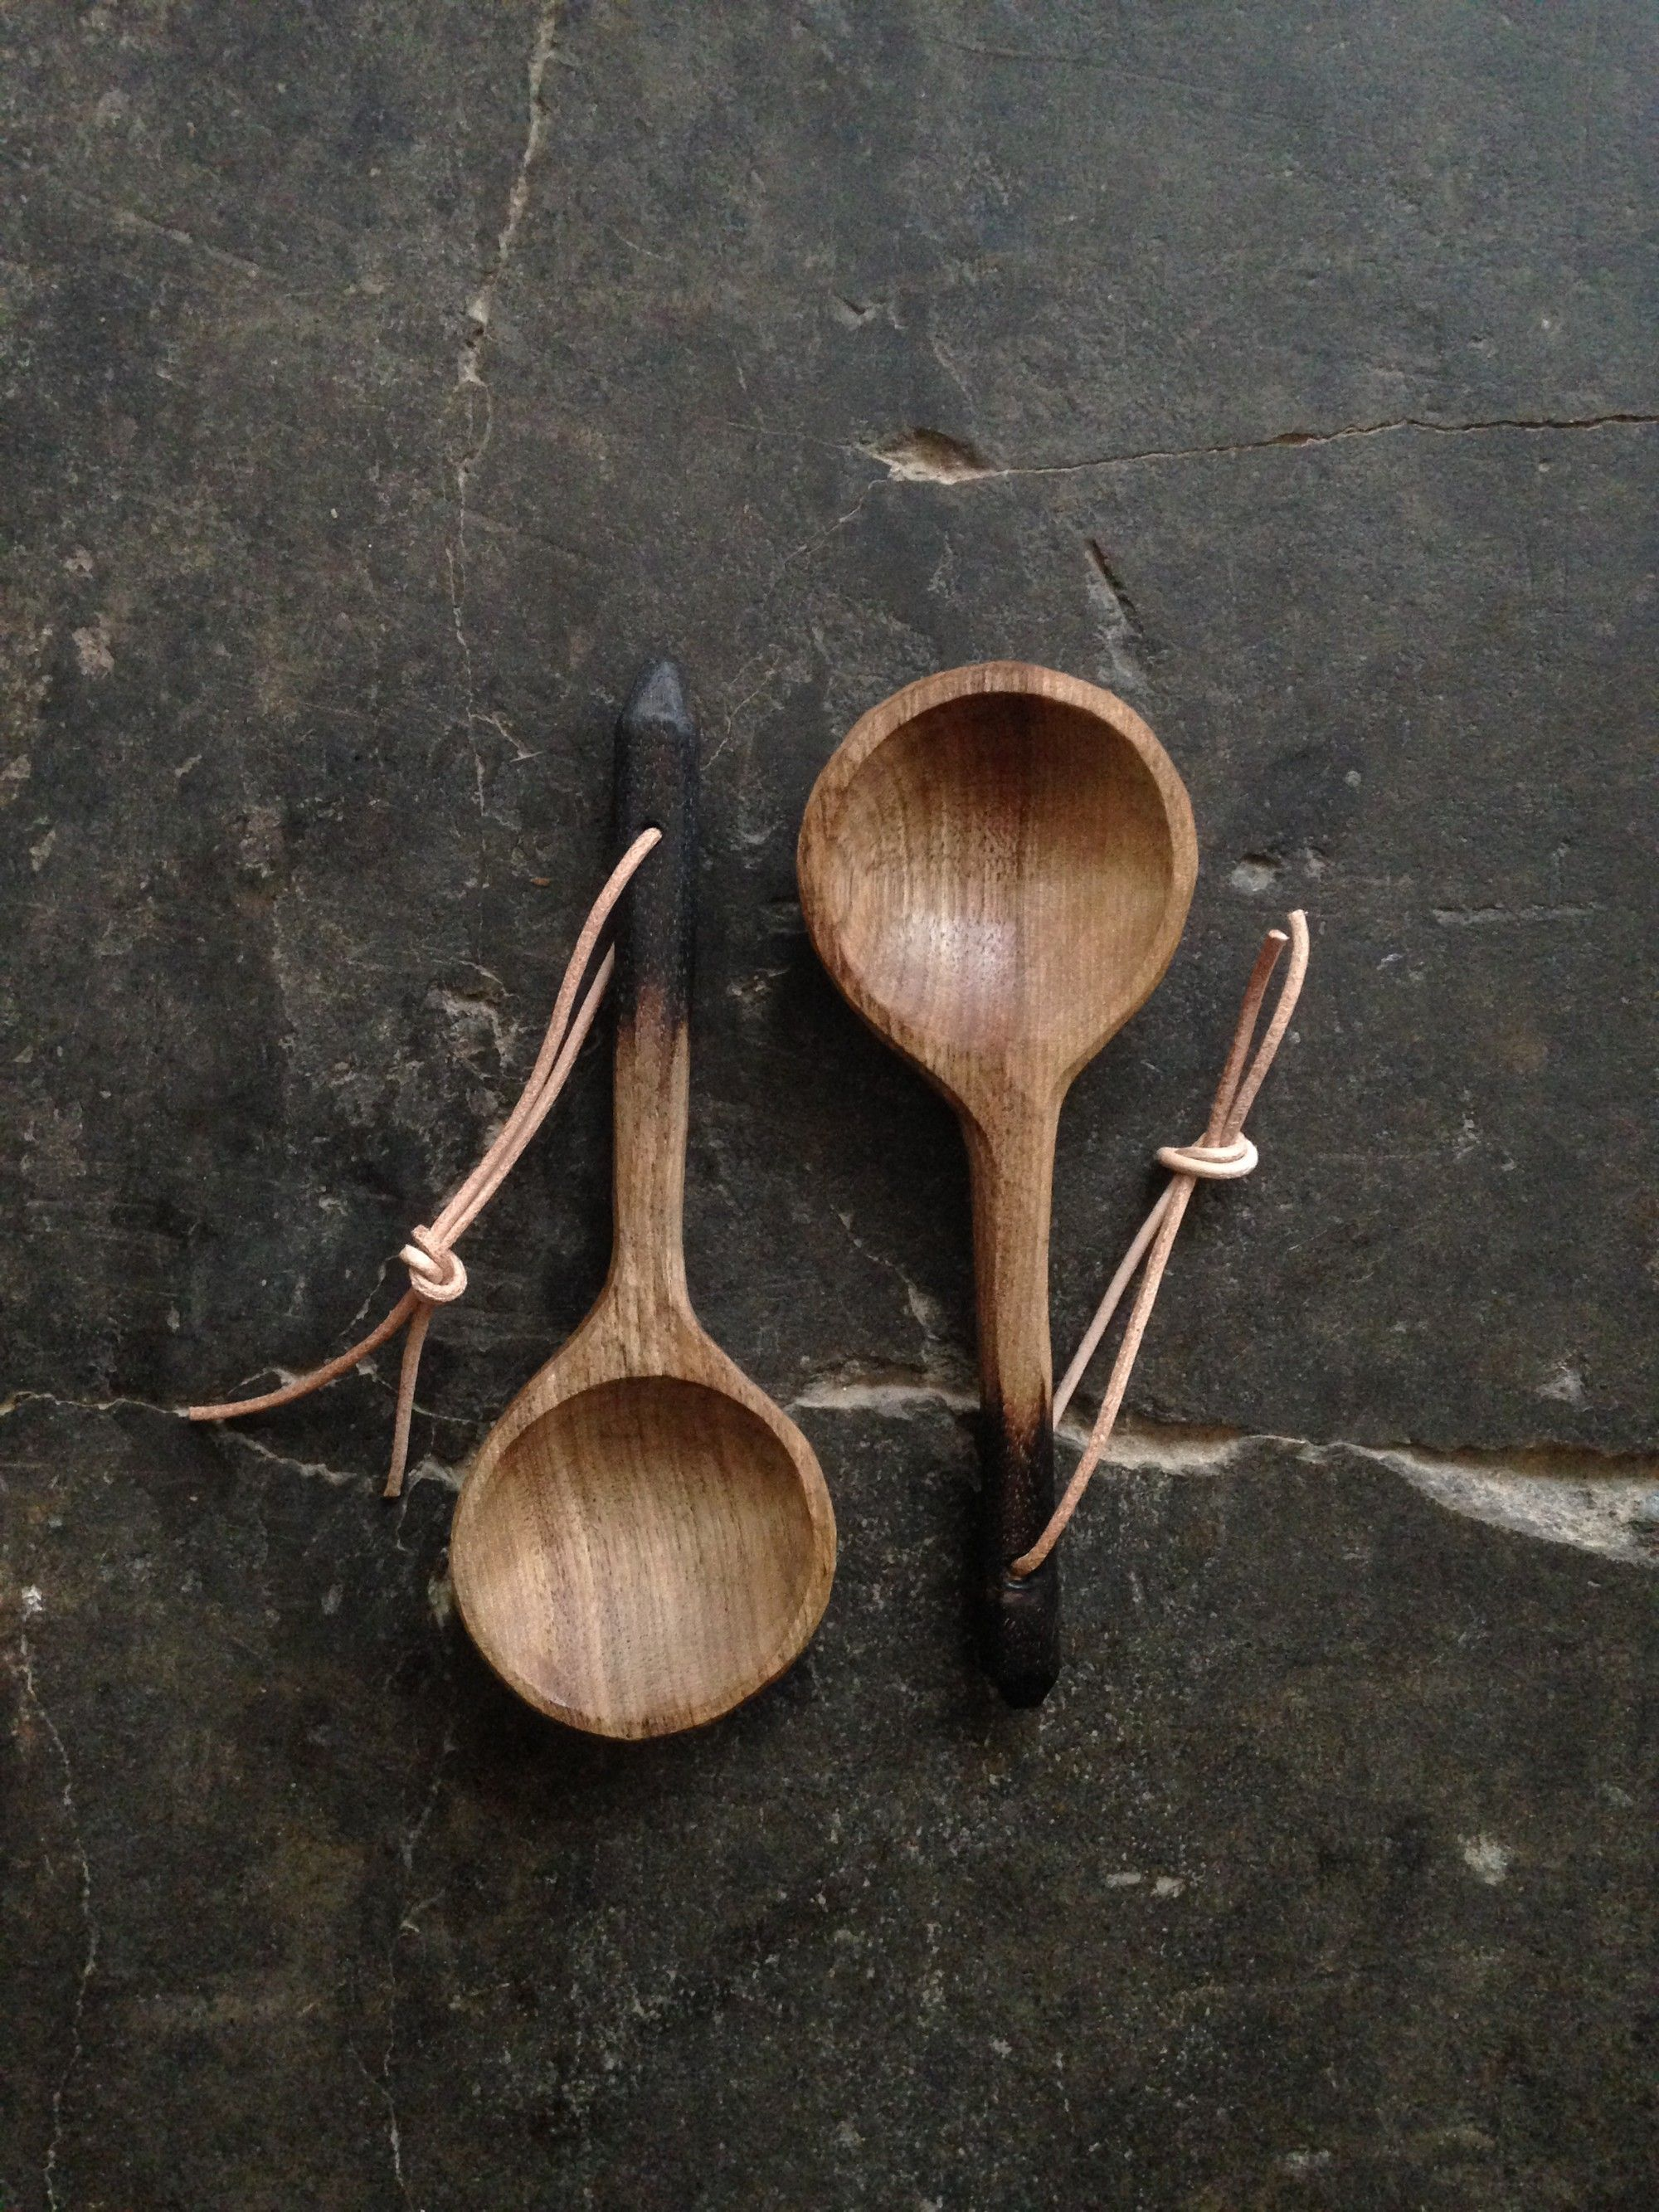 Mittelalter Küchengeräte Take Plain Unfinished Wooden Spoons And Stain Them Walnut